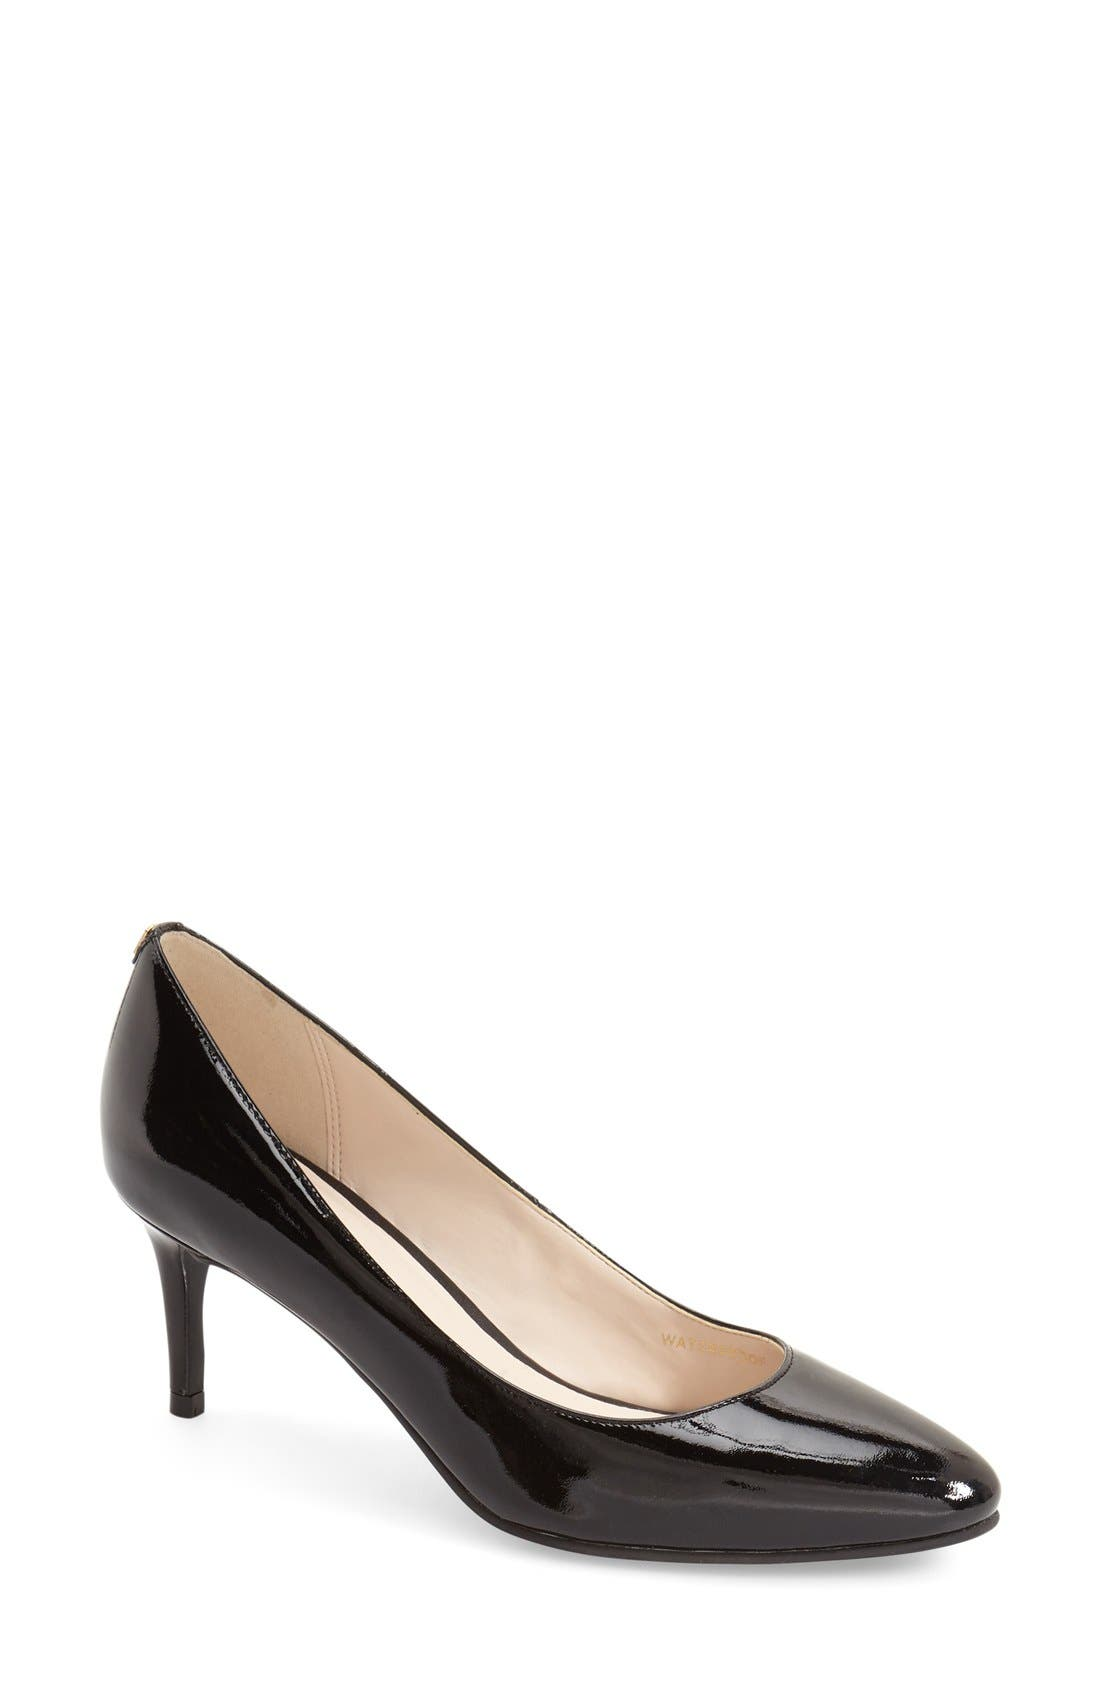 Main Image - Cole Haan 'Kelsey' Waterproof Pump (Women)